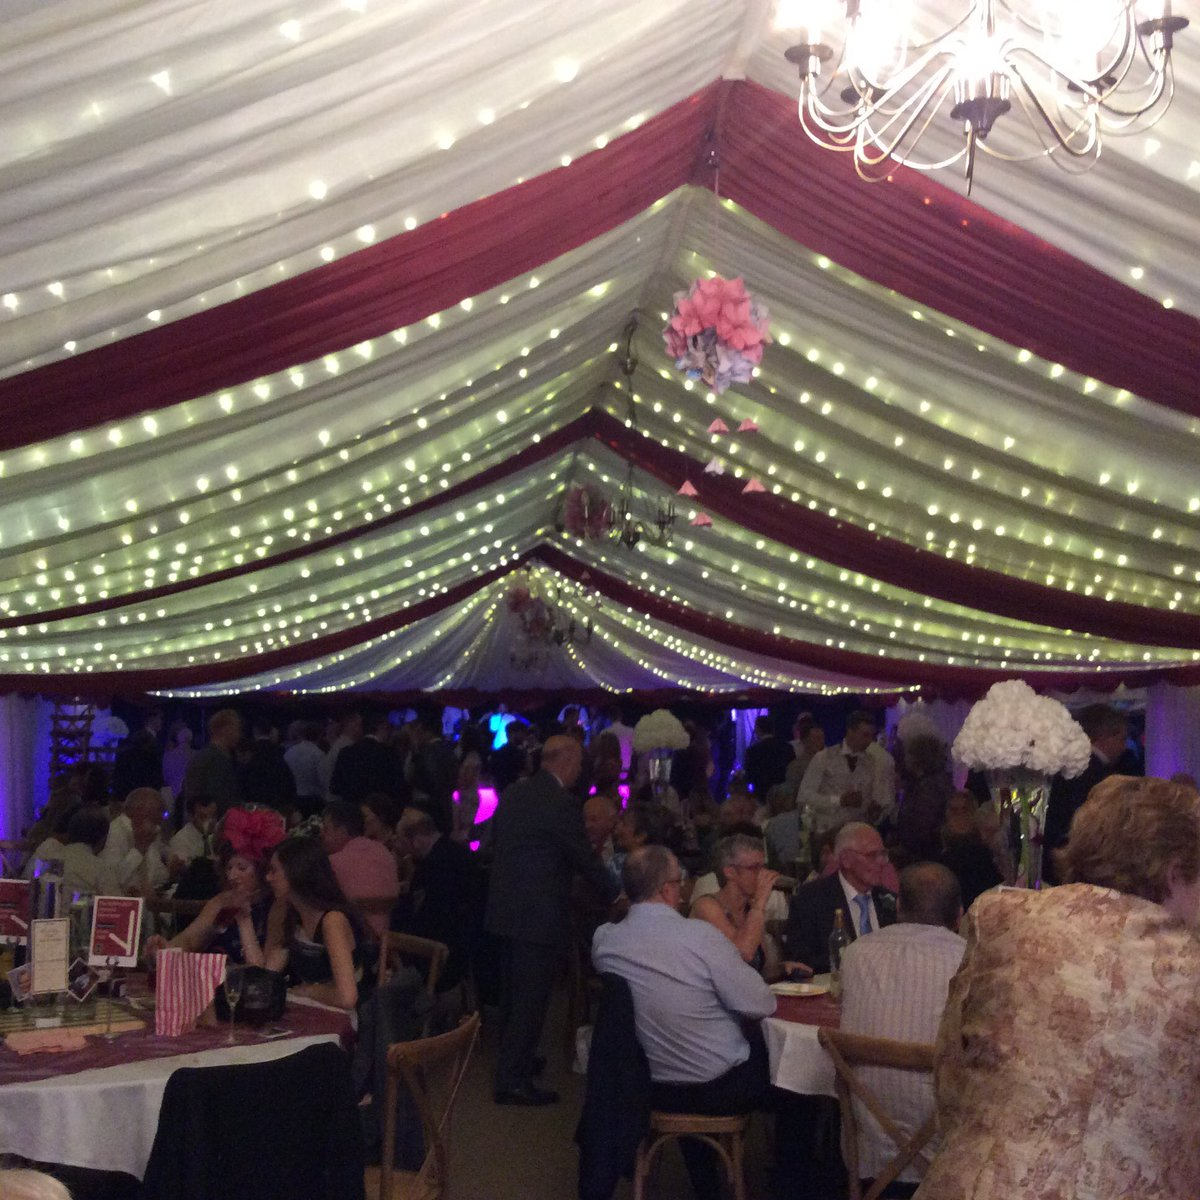 Some images from #kerry&Adam #wedding #marquee .... they went with a claret theme